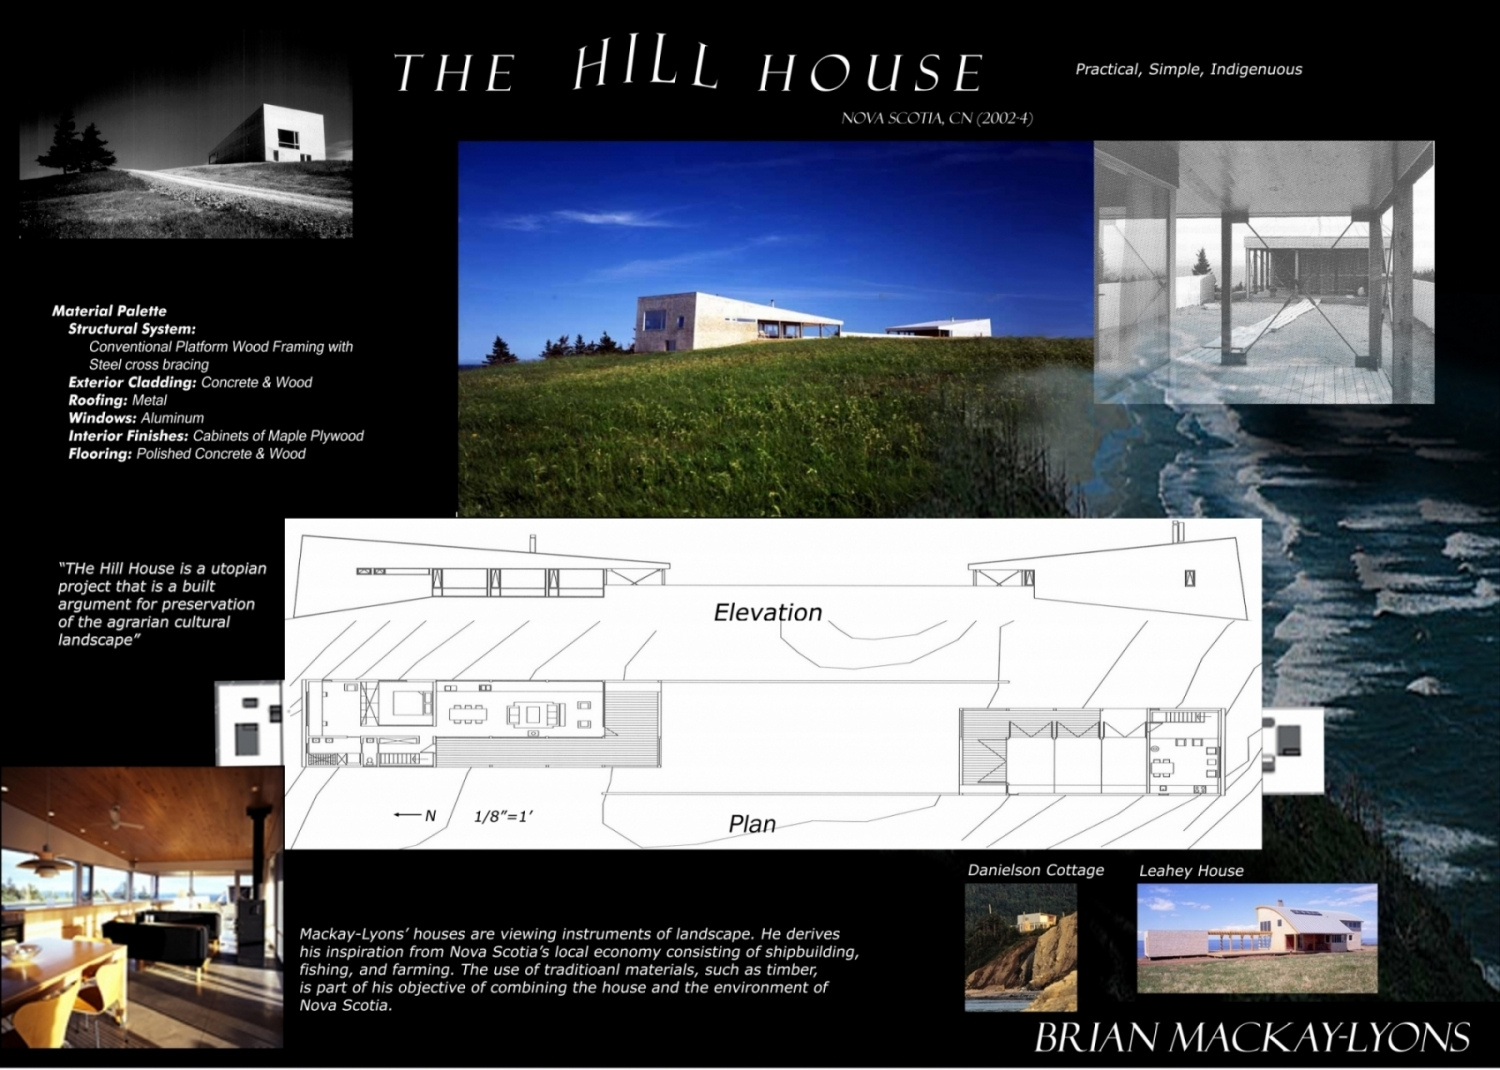 The Hill House Case Study